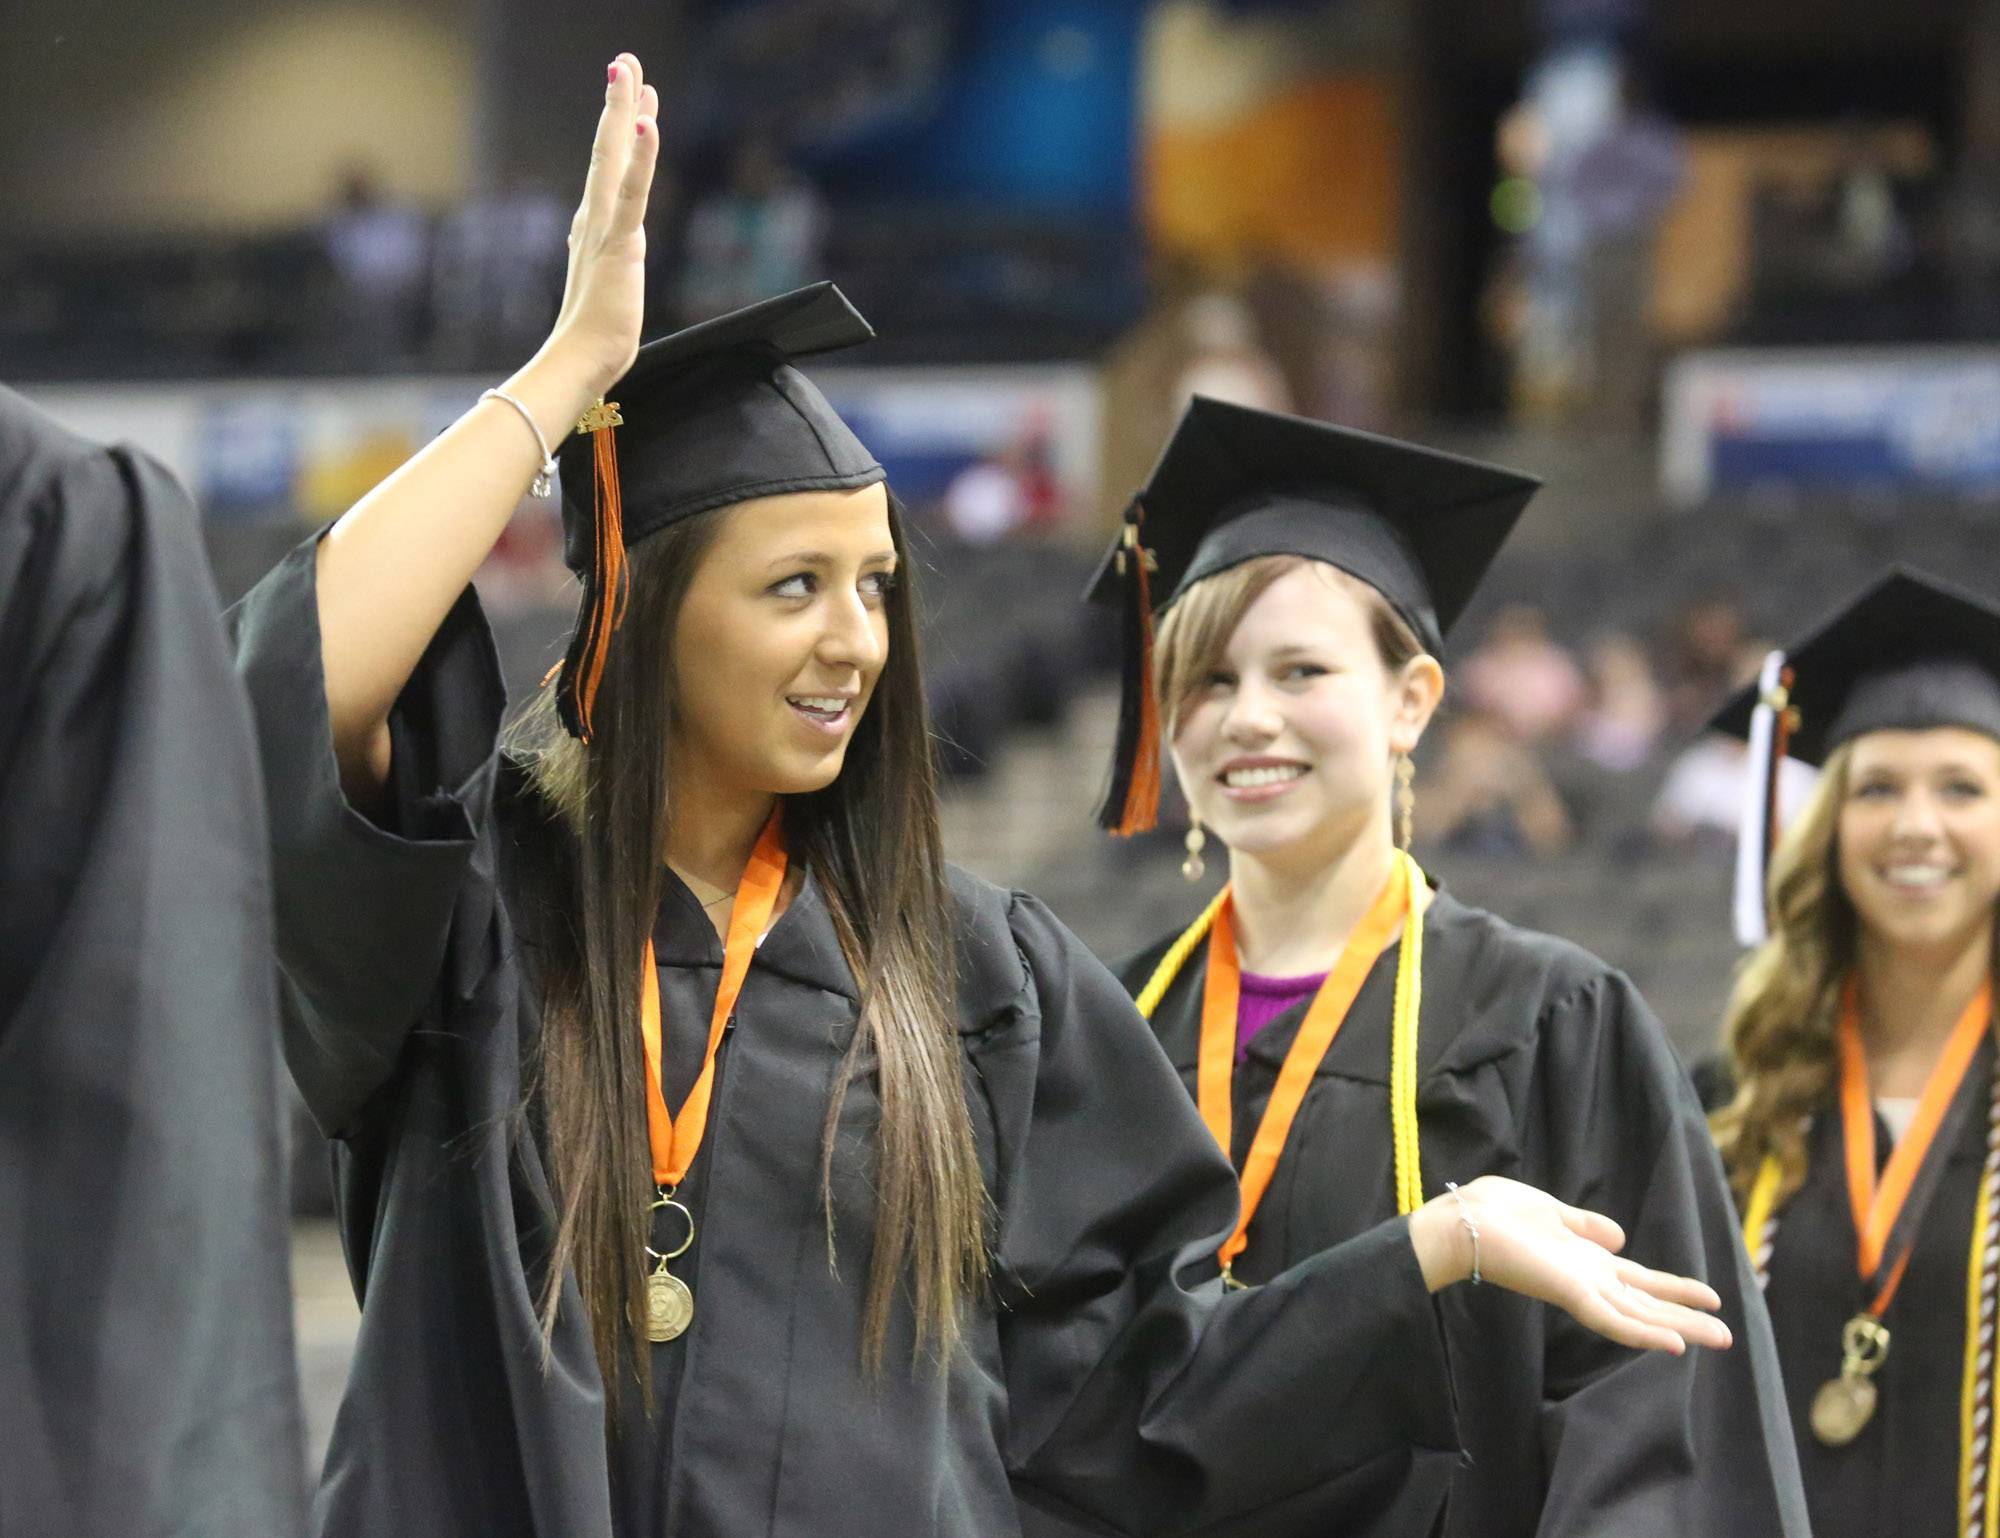 Images from the Libertyville High School graduation on Friday, June 6 at the Sears Centre in Hoffman Estates.